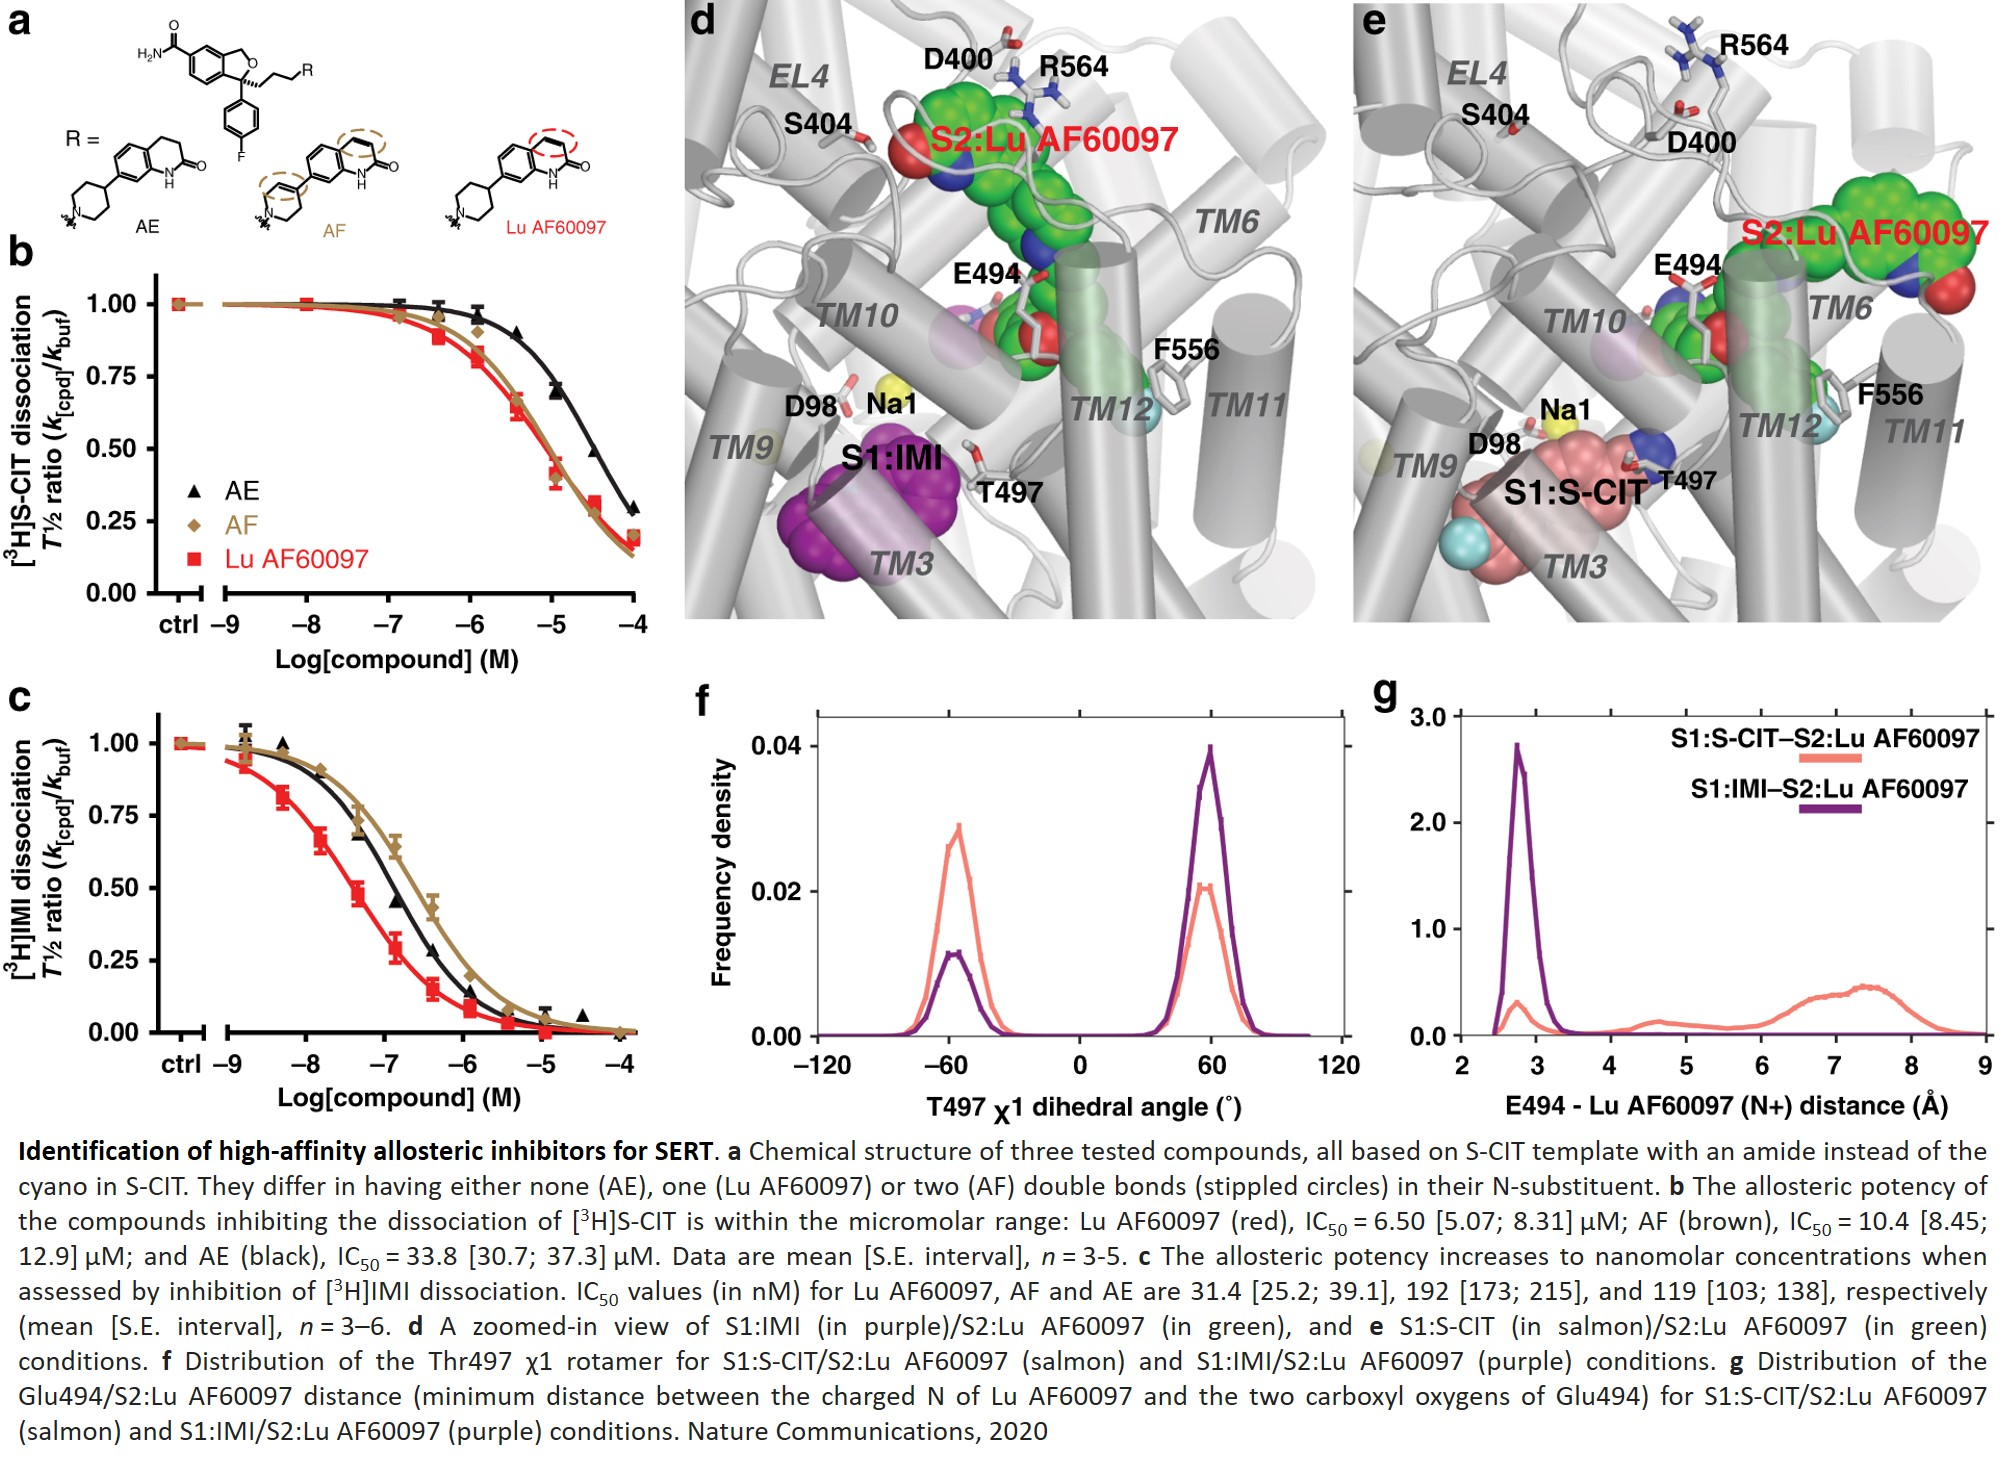 A new antidepressant binding to allosteric site of serotonin transporter identified!